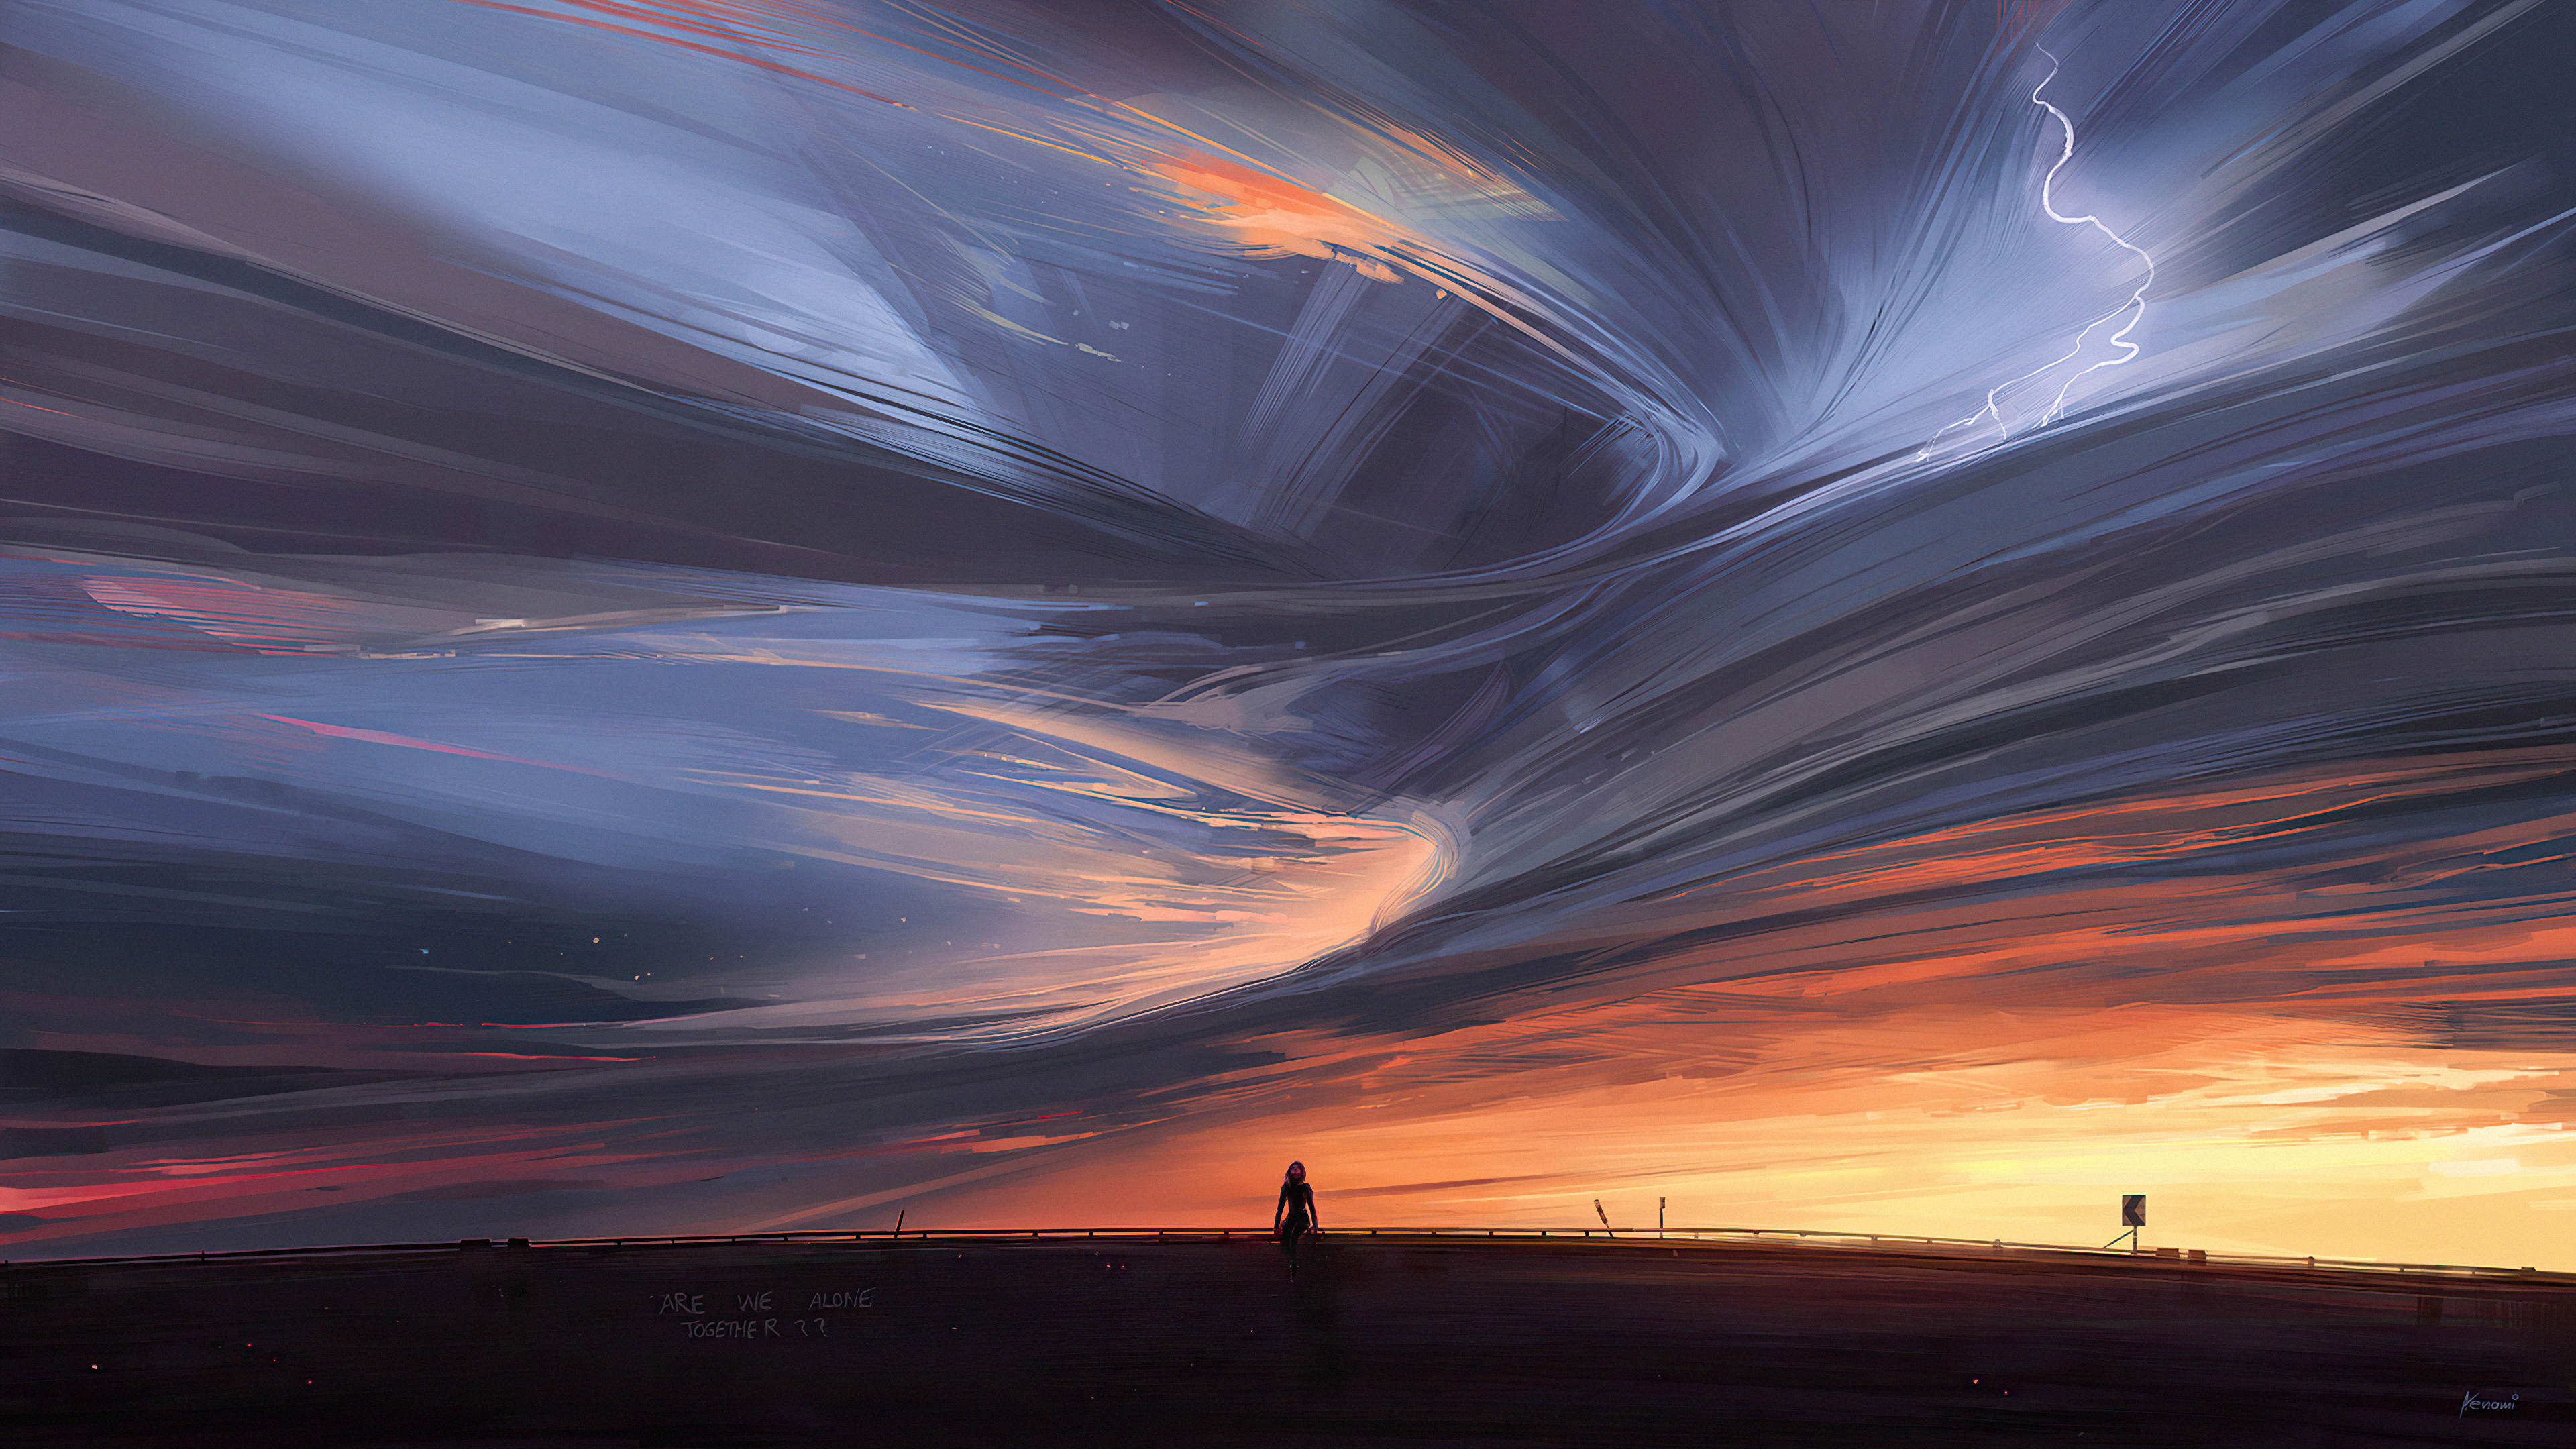 Wallpaper Sunset with clouds in swirl and thunder